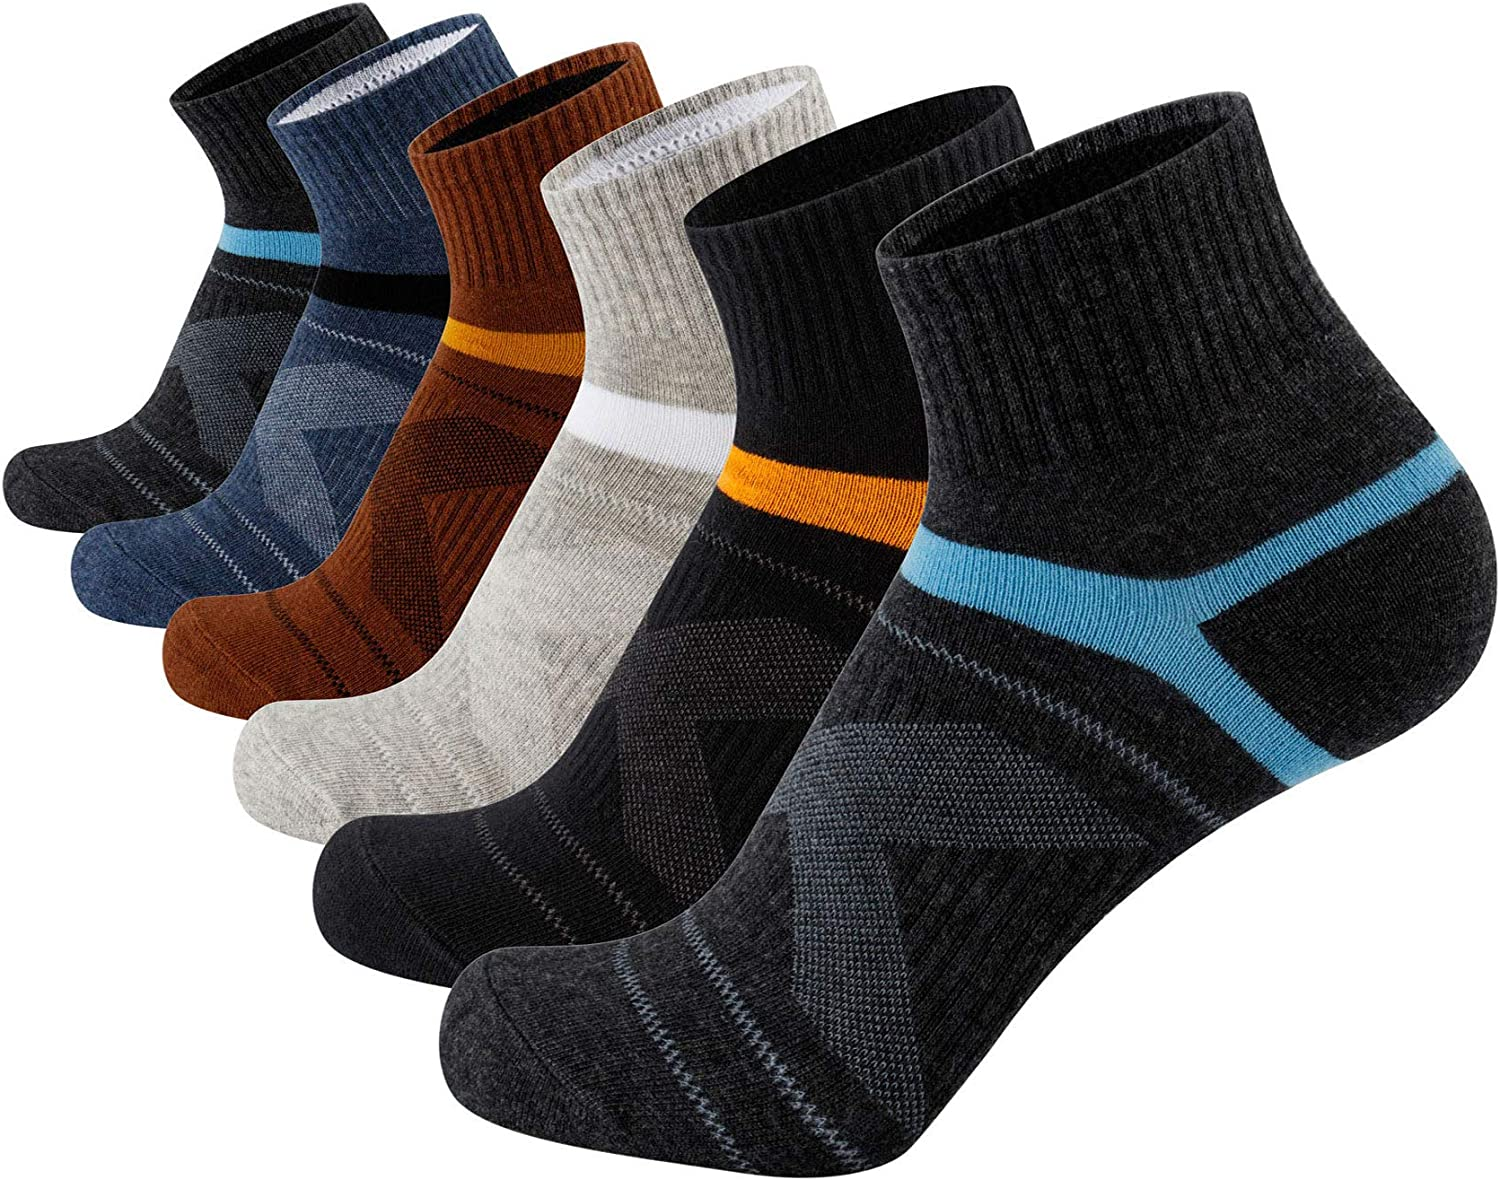 Aserlin Men's Socks Athletic Ankle Socks Performance Cotton Cushioned Colorful Socks for Sports